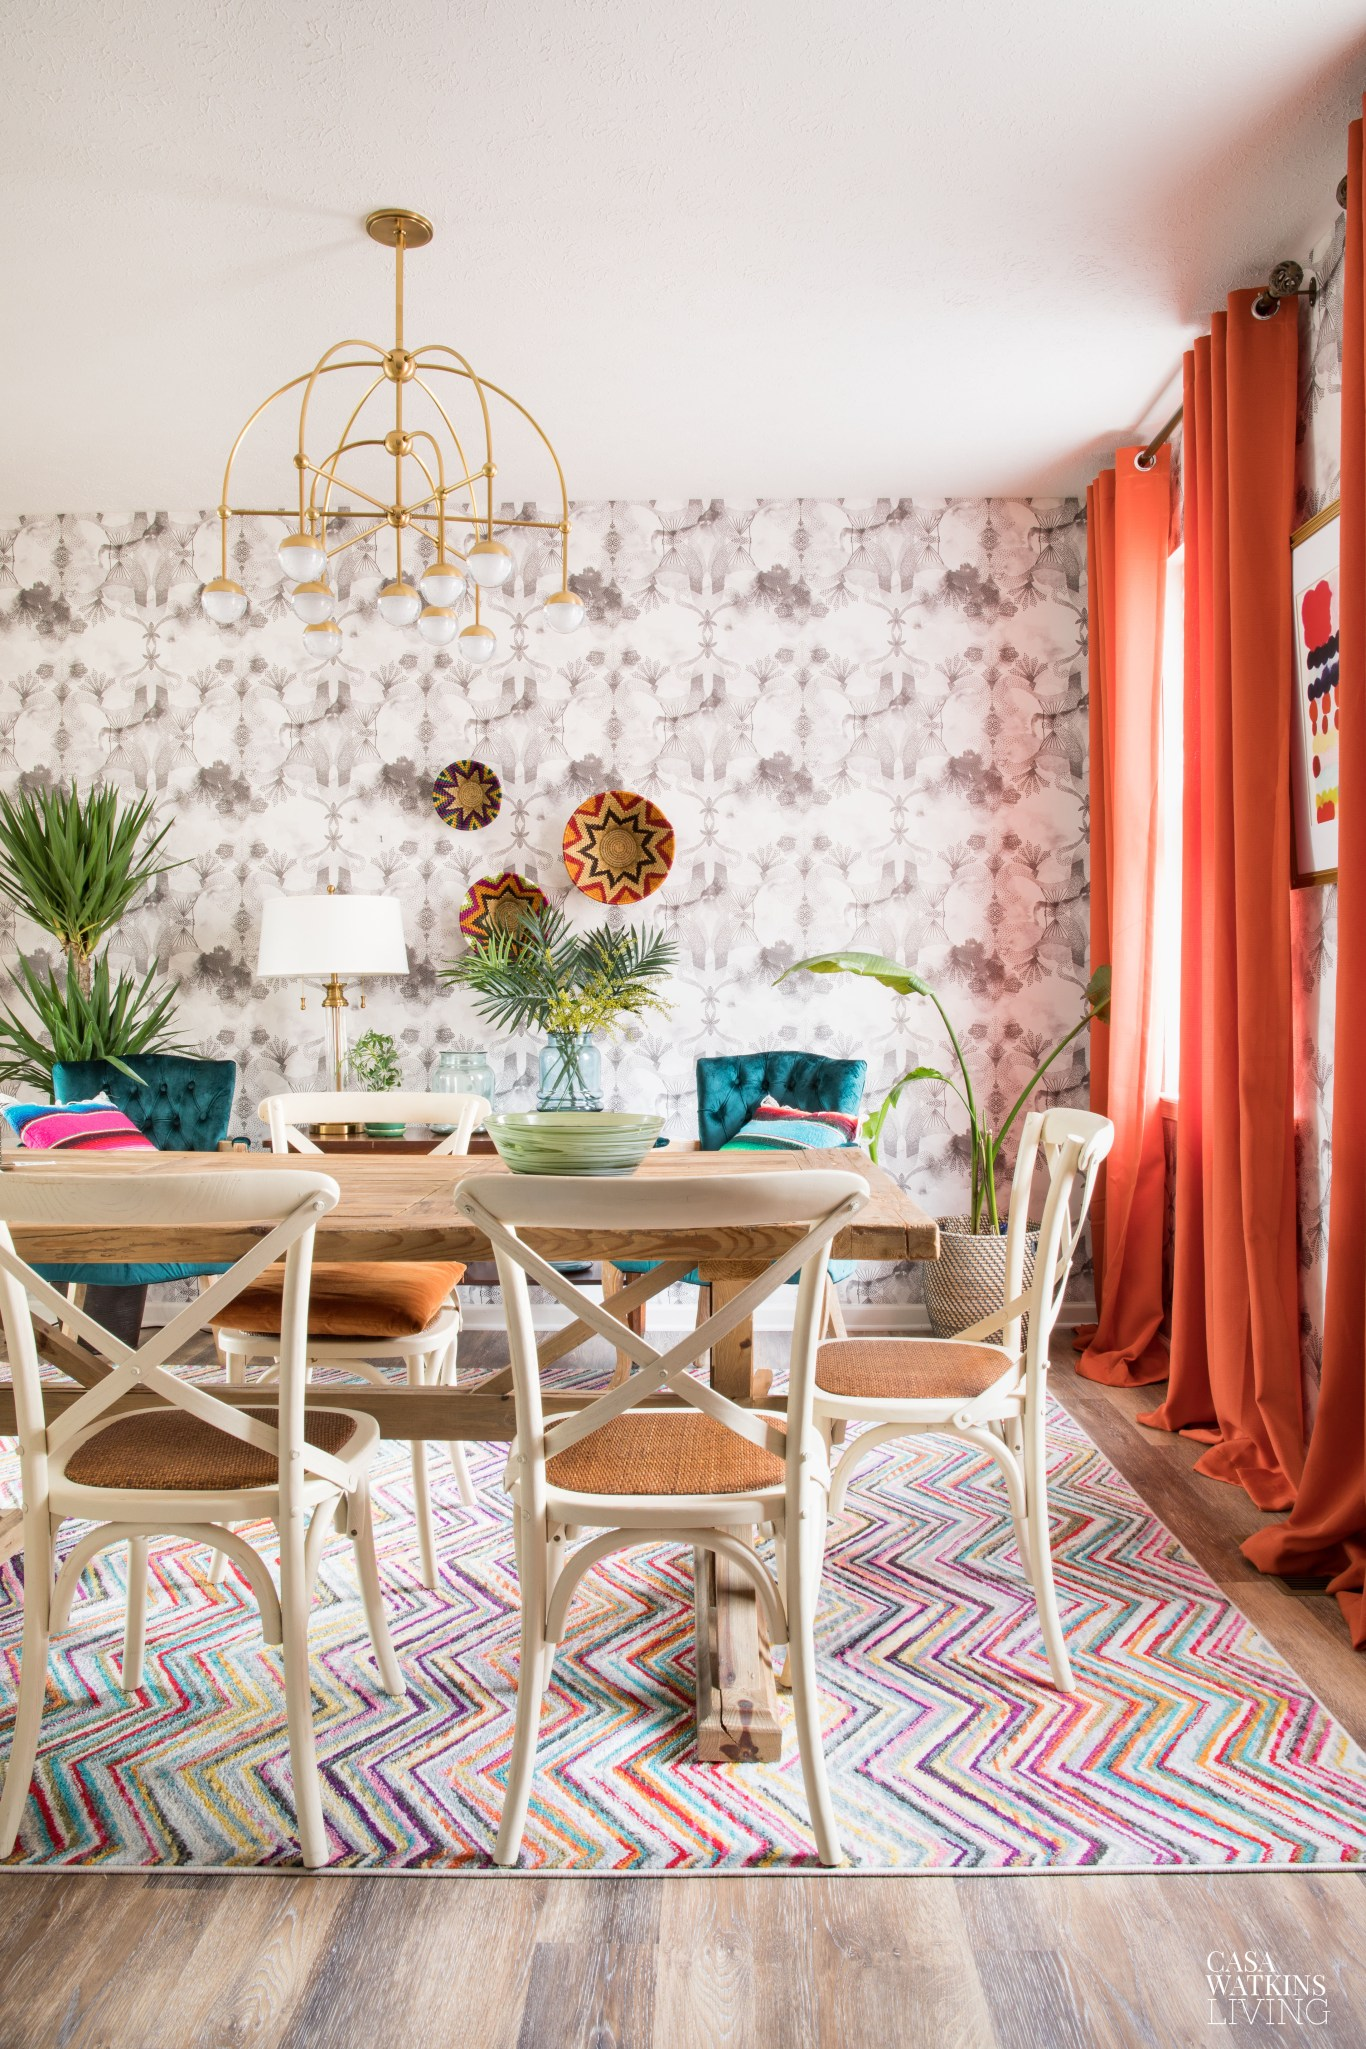 Eclectic boho colorful dining room #diningroom #diningroomdecor #eclecticdecor #colorlovers #colorfuldecor #wallpaper #diningroomfurniture #lighting